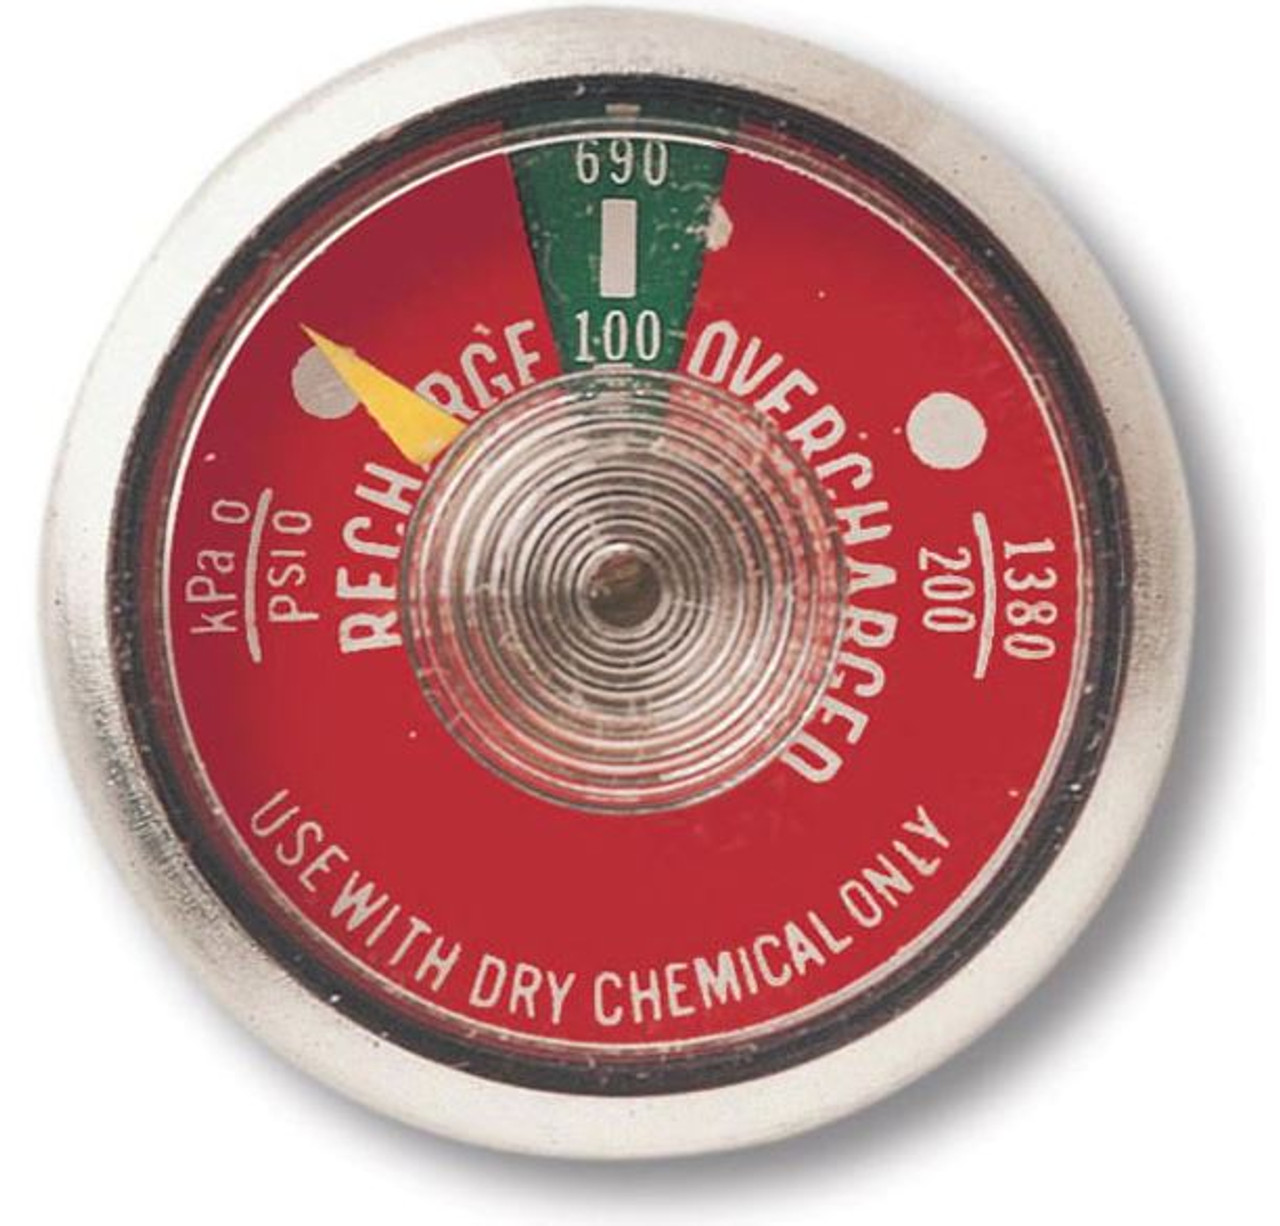 G350 - 350 lb Dry Chemical Fire Extinguisher Gauge